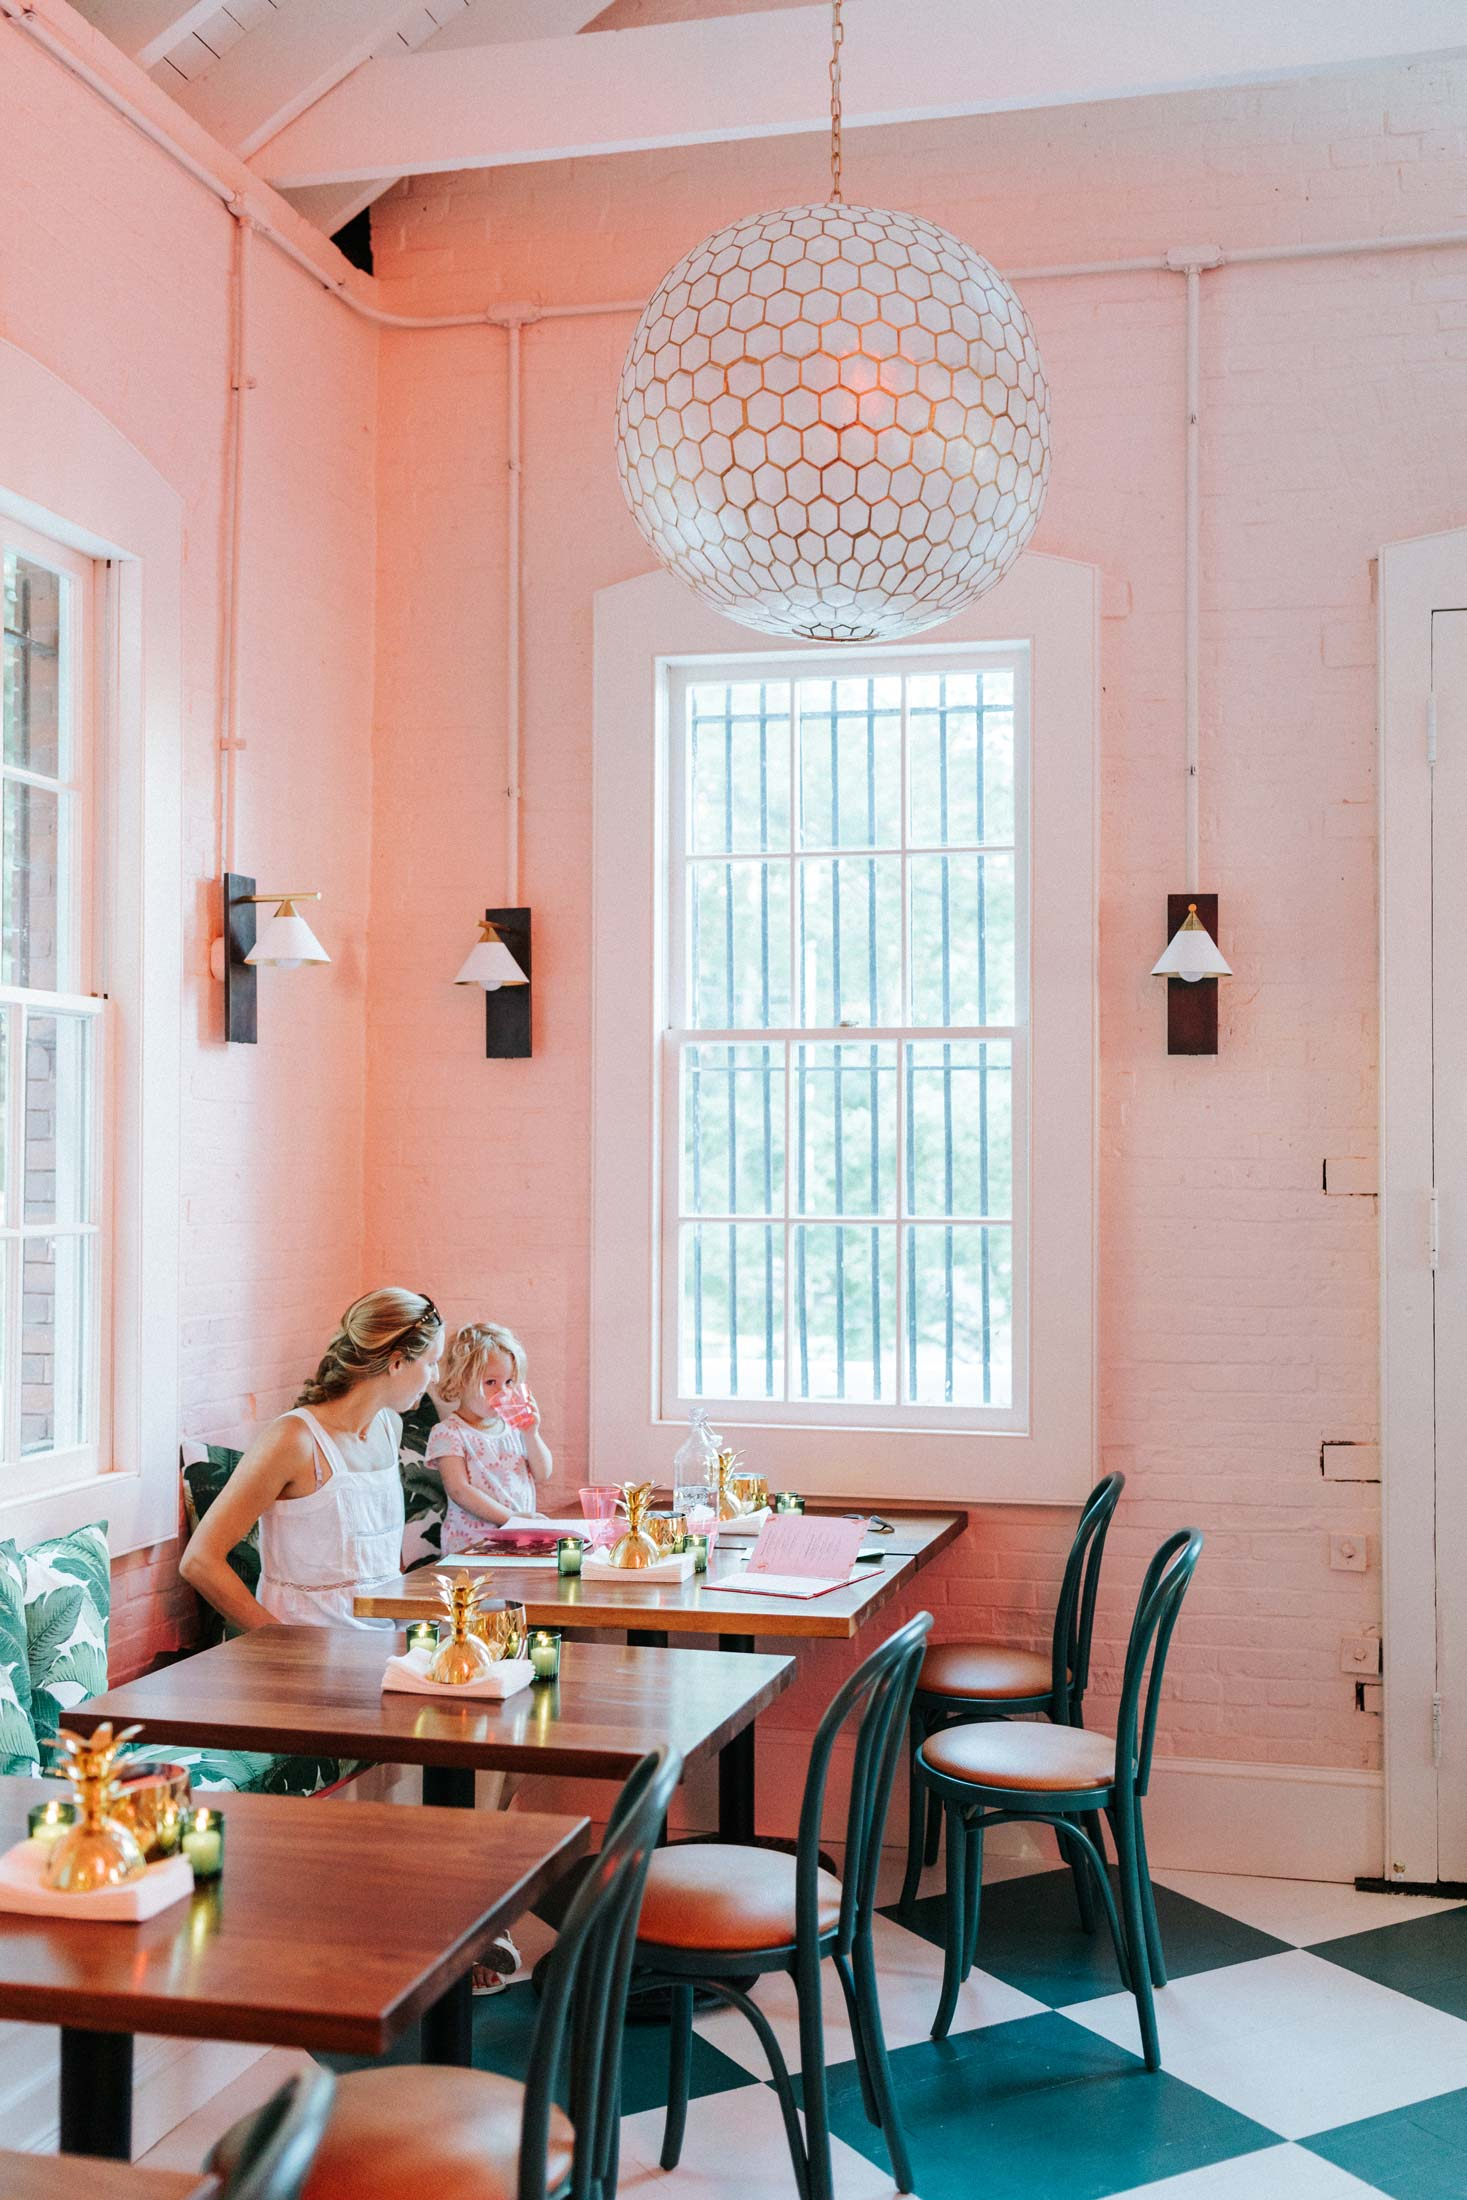 In the dining room, mahogany tables by Atlantic Hardwoods in Portland are flanked by banana leaf fabric banquettes and custom painted chairs fitted with ostrich leather cushions, from The Chair Market in Brooklyn. The wall sconces, chosen by Wight to anchor the airy space, are by Kelly Wearstler for Visual Comfort. The gold pineapples on the tables have a practical purpose in addition to island charm: They hold Wet-Naps, Wight says, as much of the menu is meant to be eaten by hand.